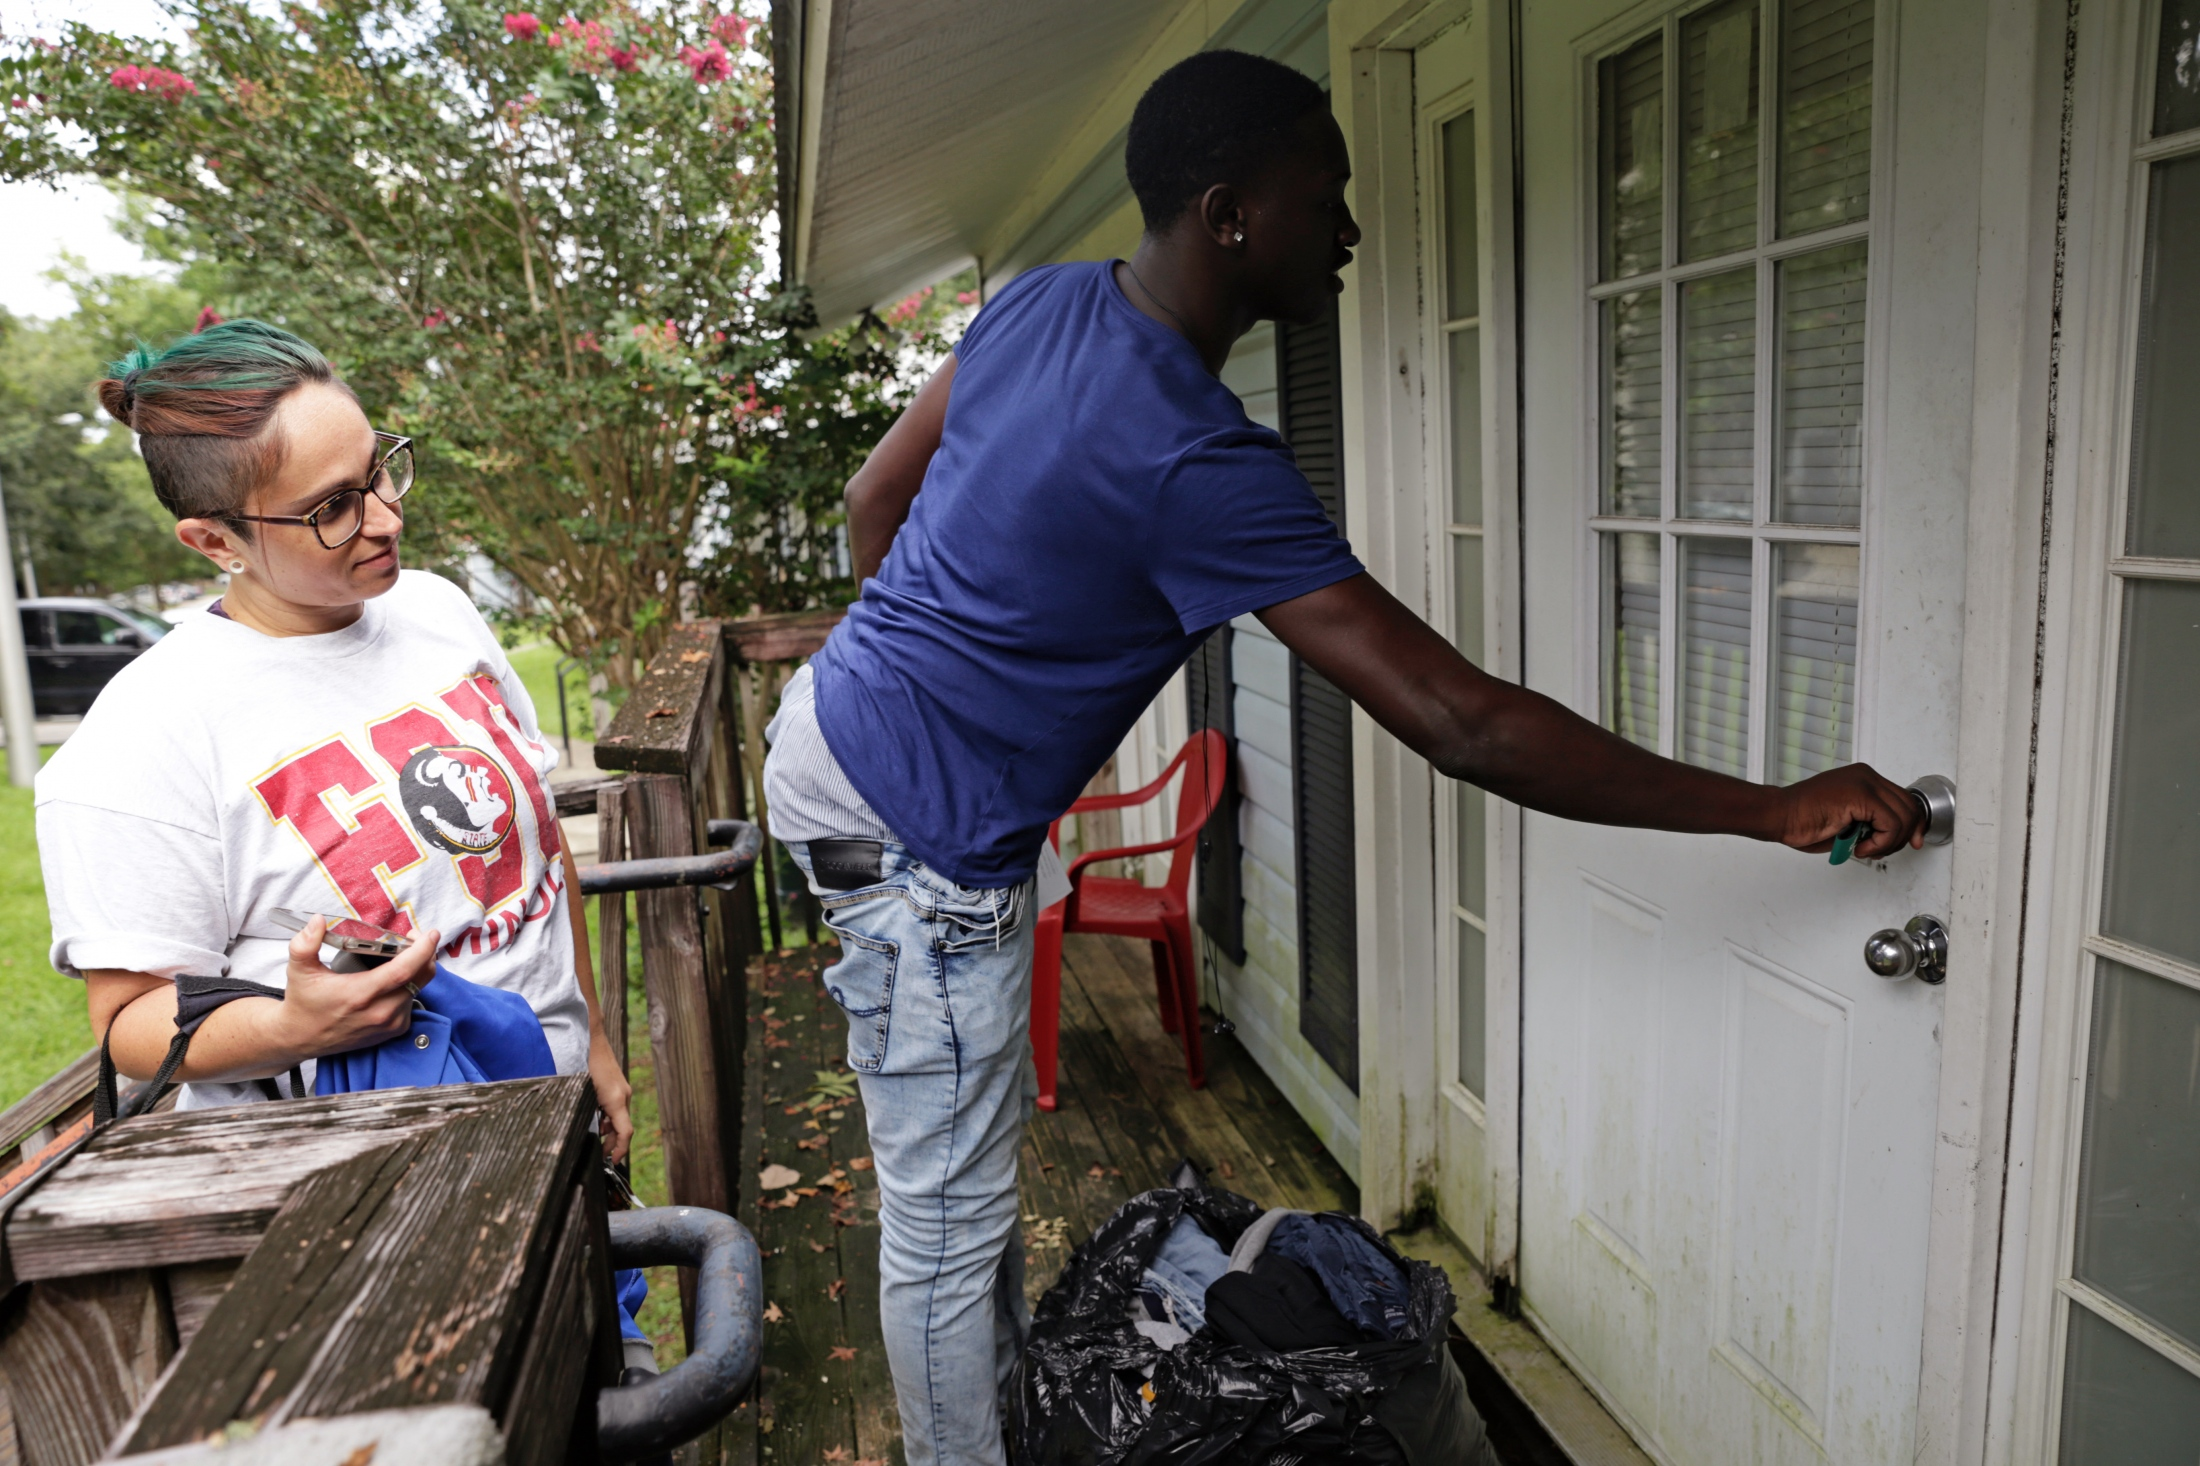 Going Places caseworker Erin Foley helps Ladarius Simmons move into his new room at a student housing complex.